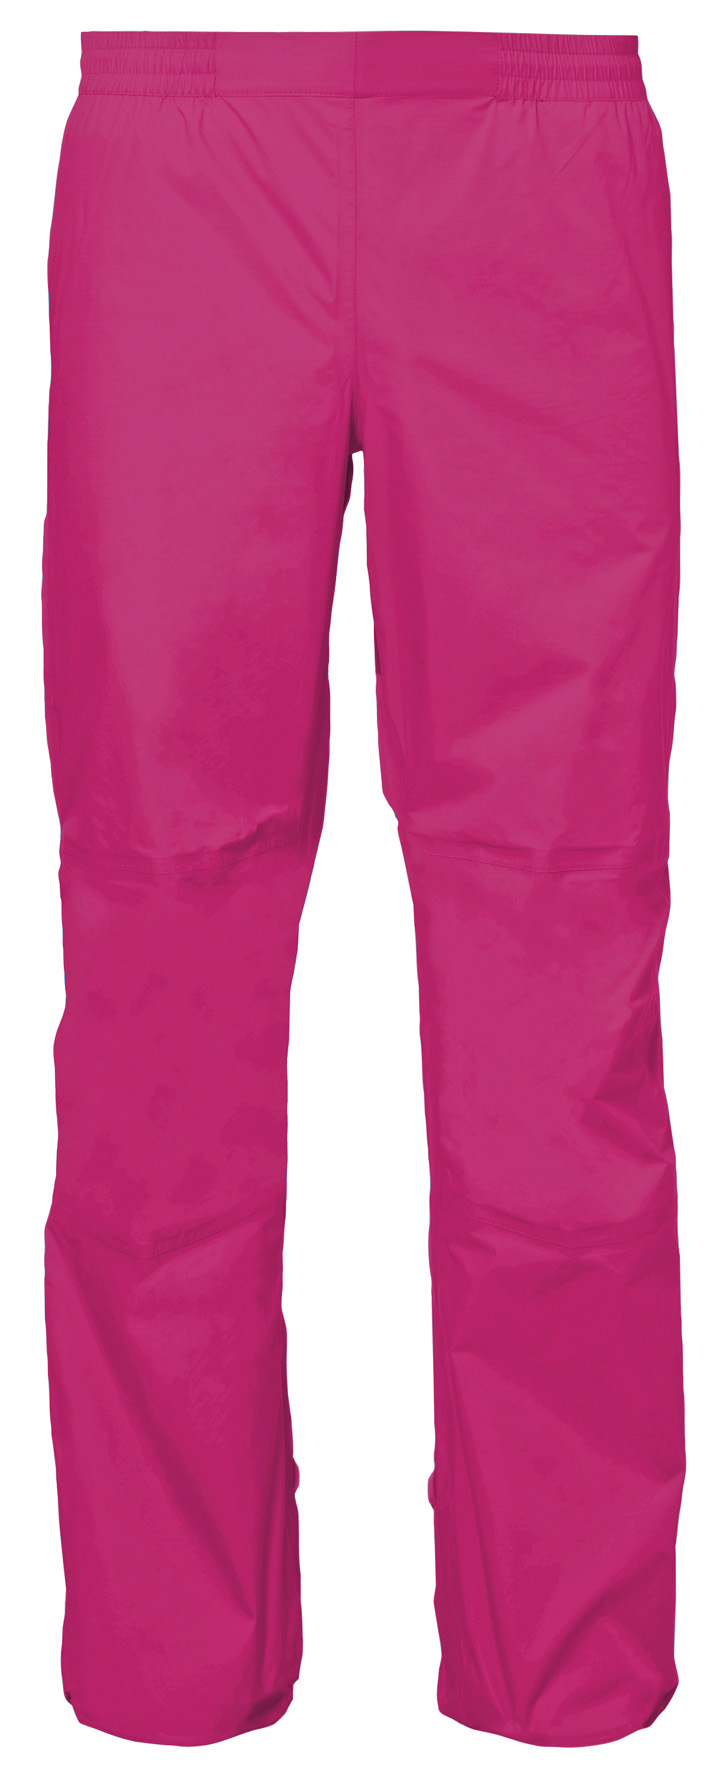 VAUDE Women´s Drop Pants II grenadine Größe 34 - schneider-sports